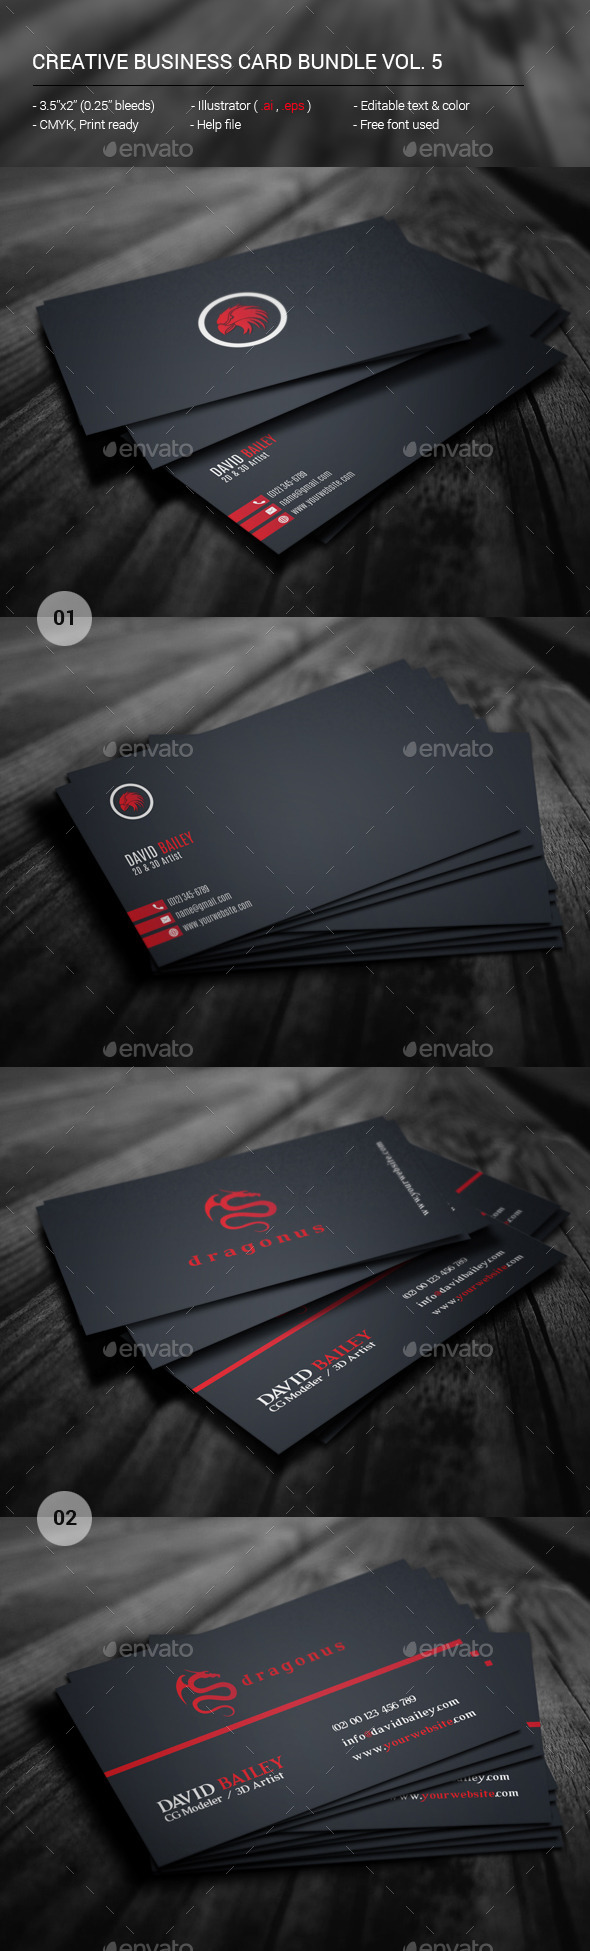 Creative Business Card Bundle Vol. 5 - Creative Business Cards